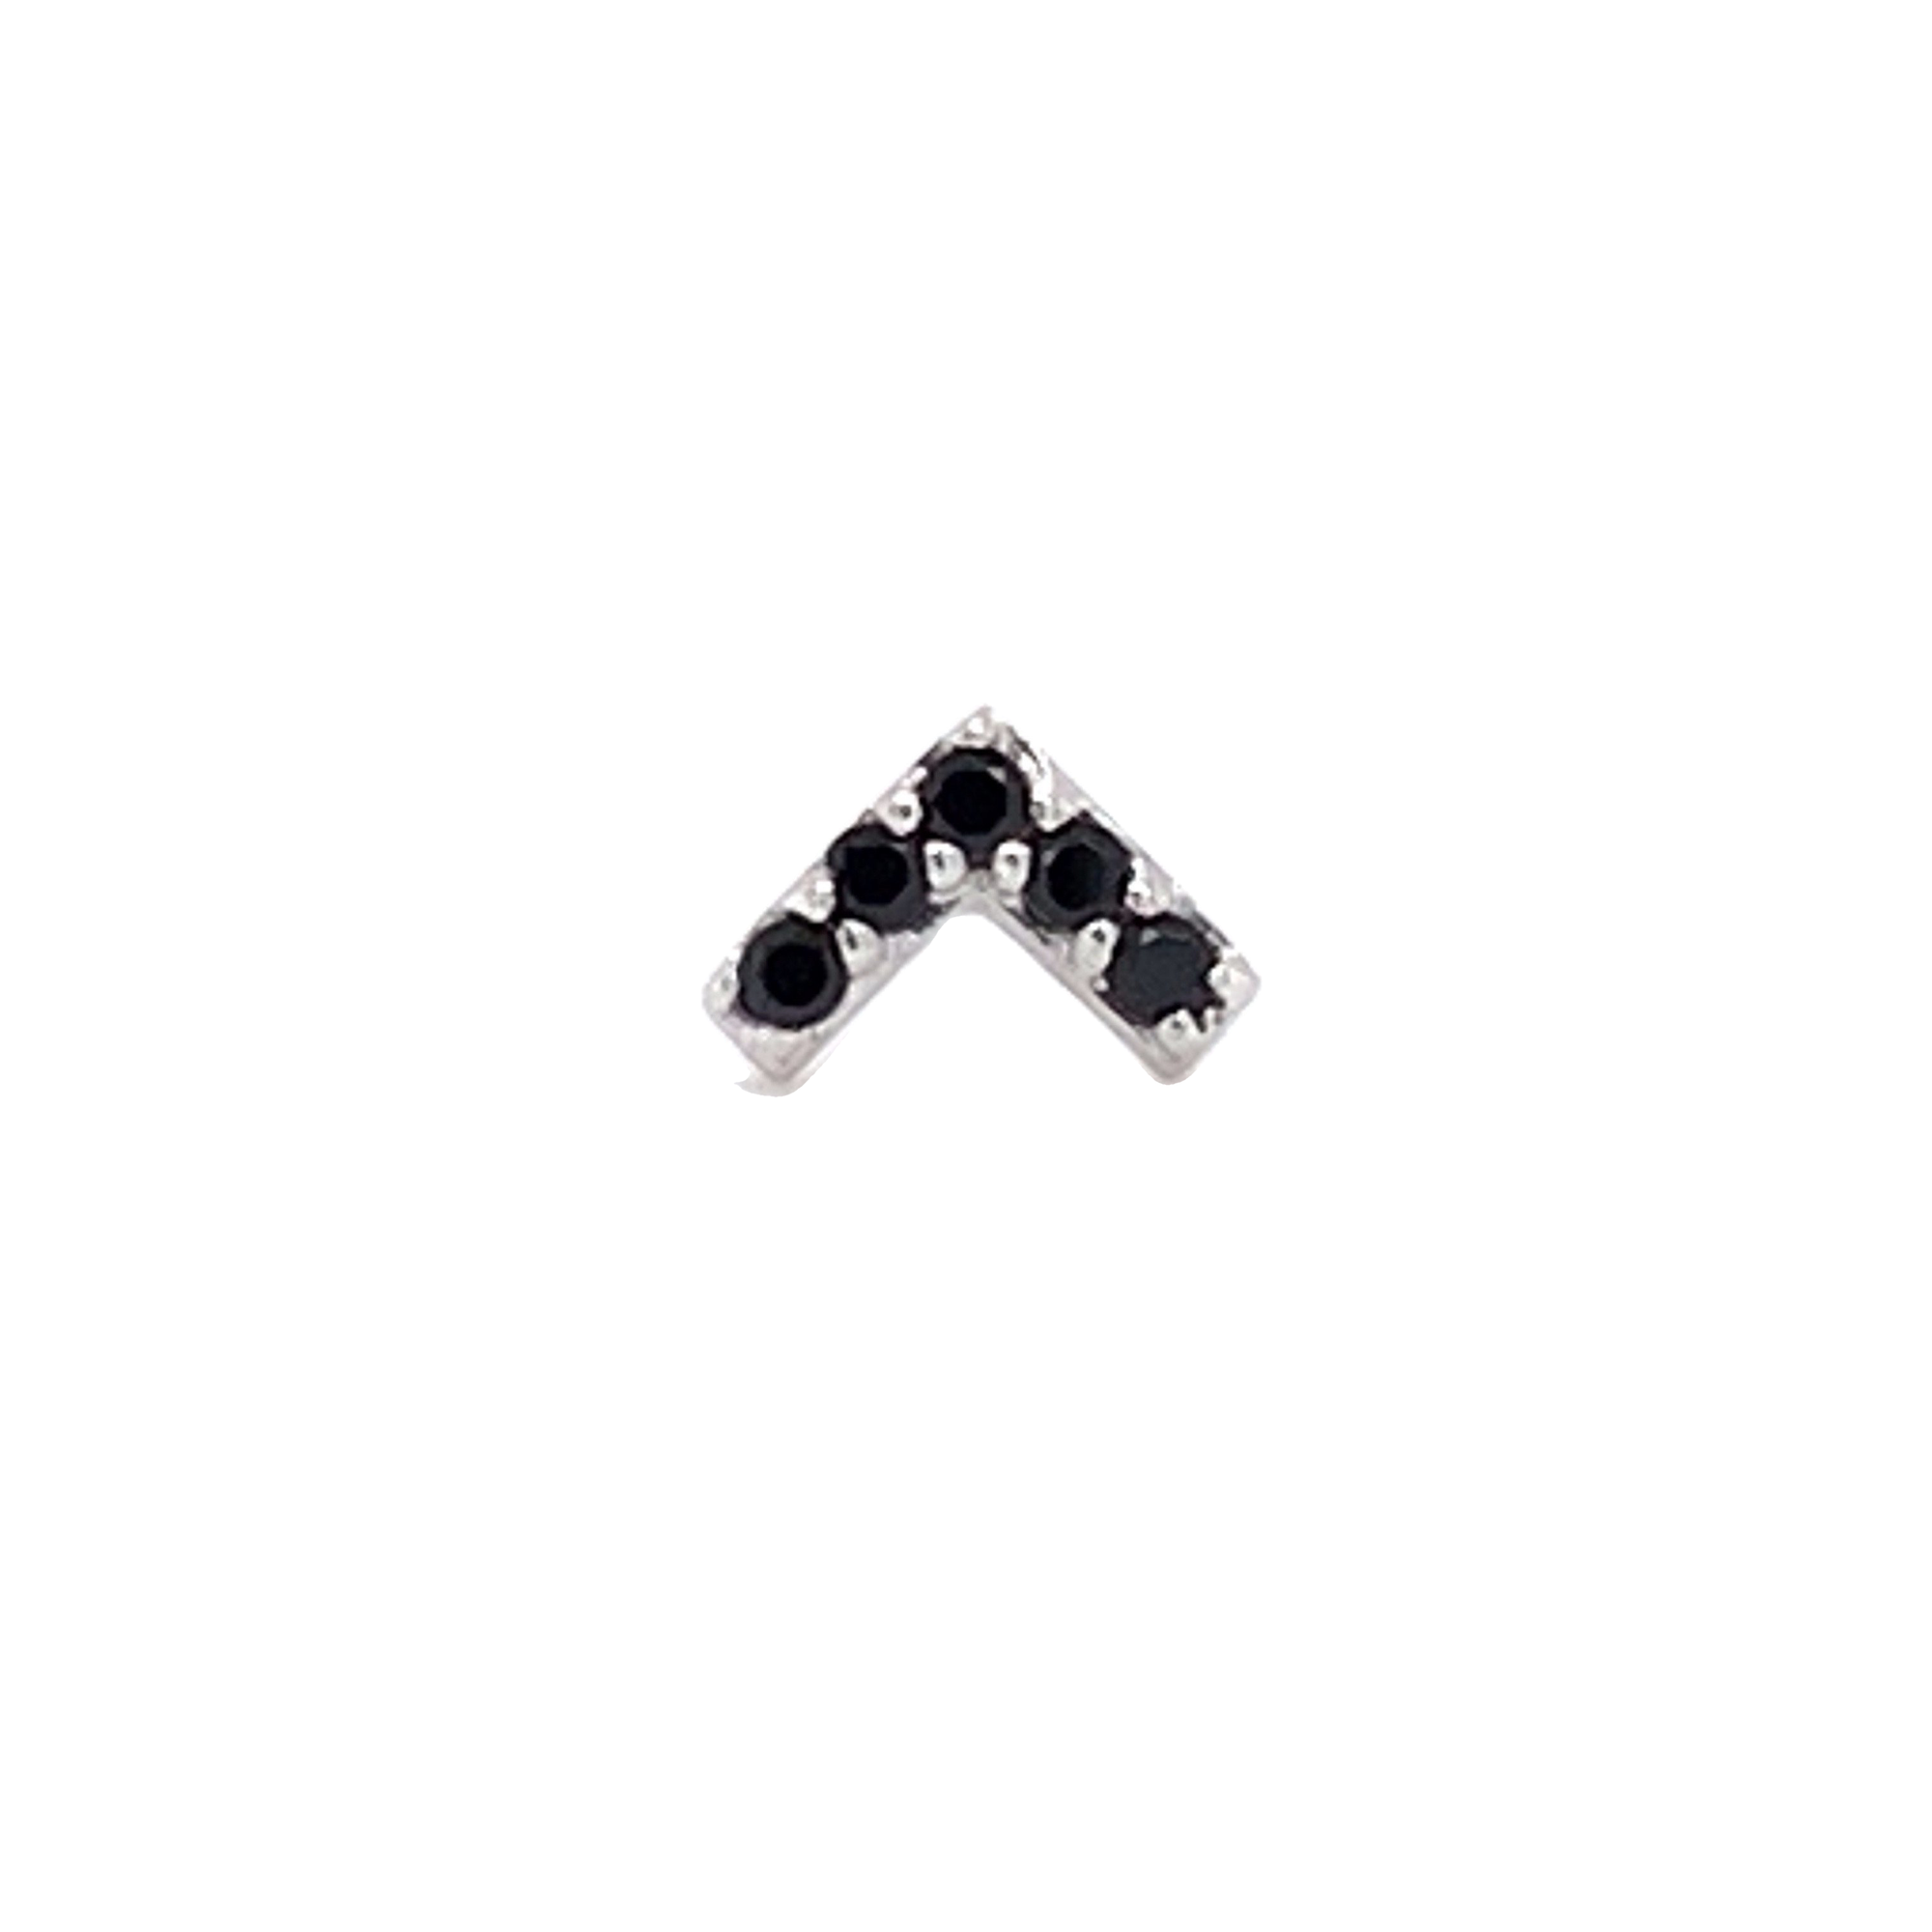 14Ct White Gold Chevron Black Cz End Attachment